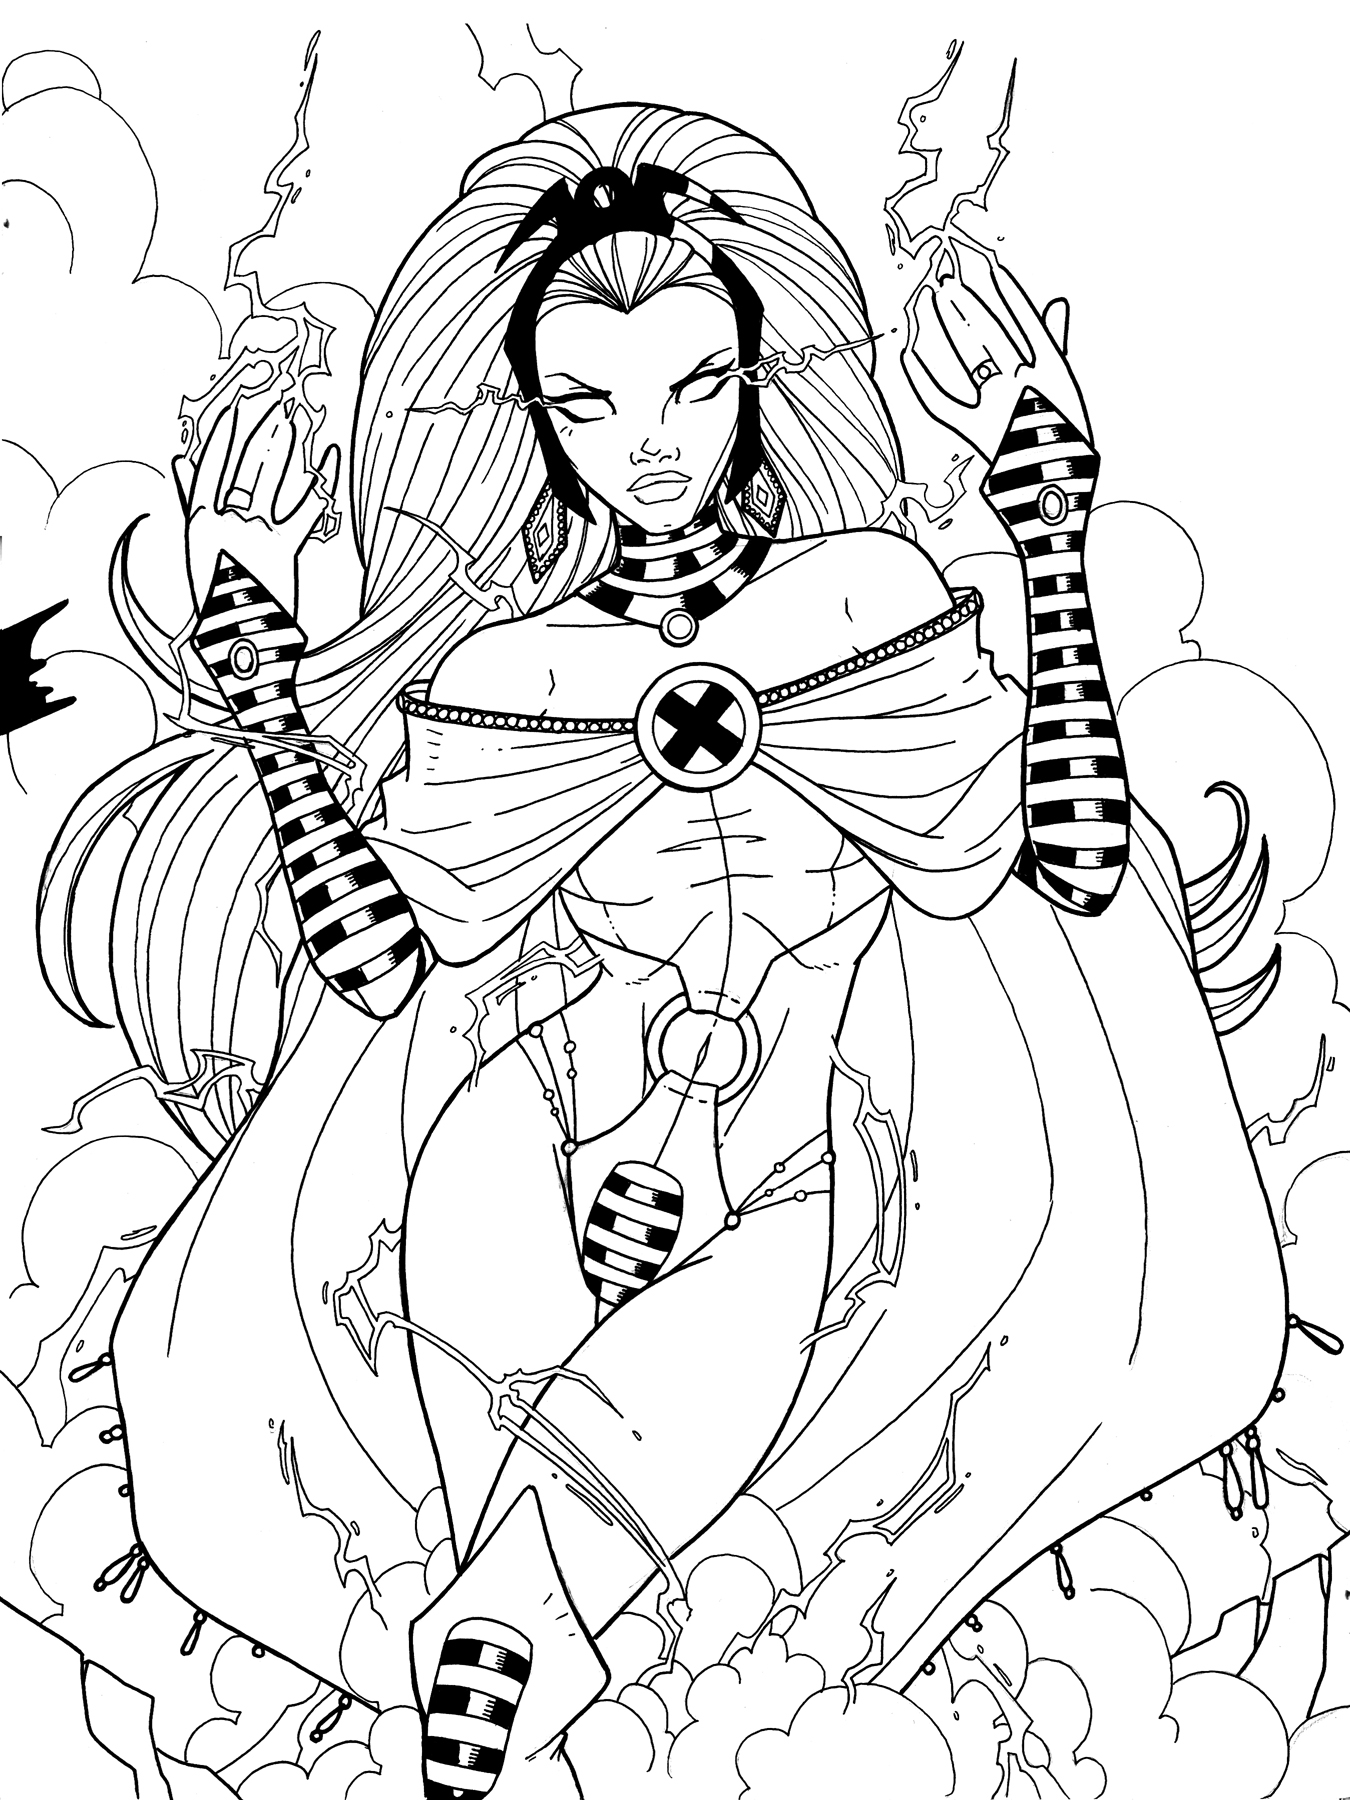 Storm x men strikeforce by jamiefayx on deviantart for X men coloring pages